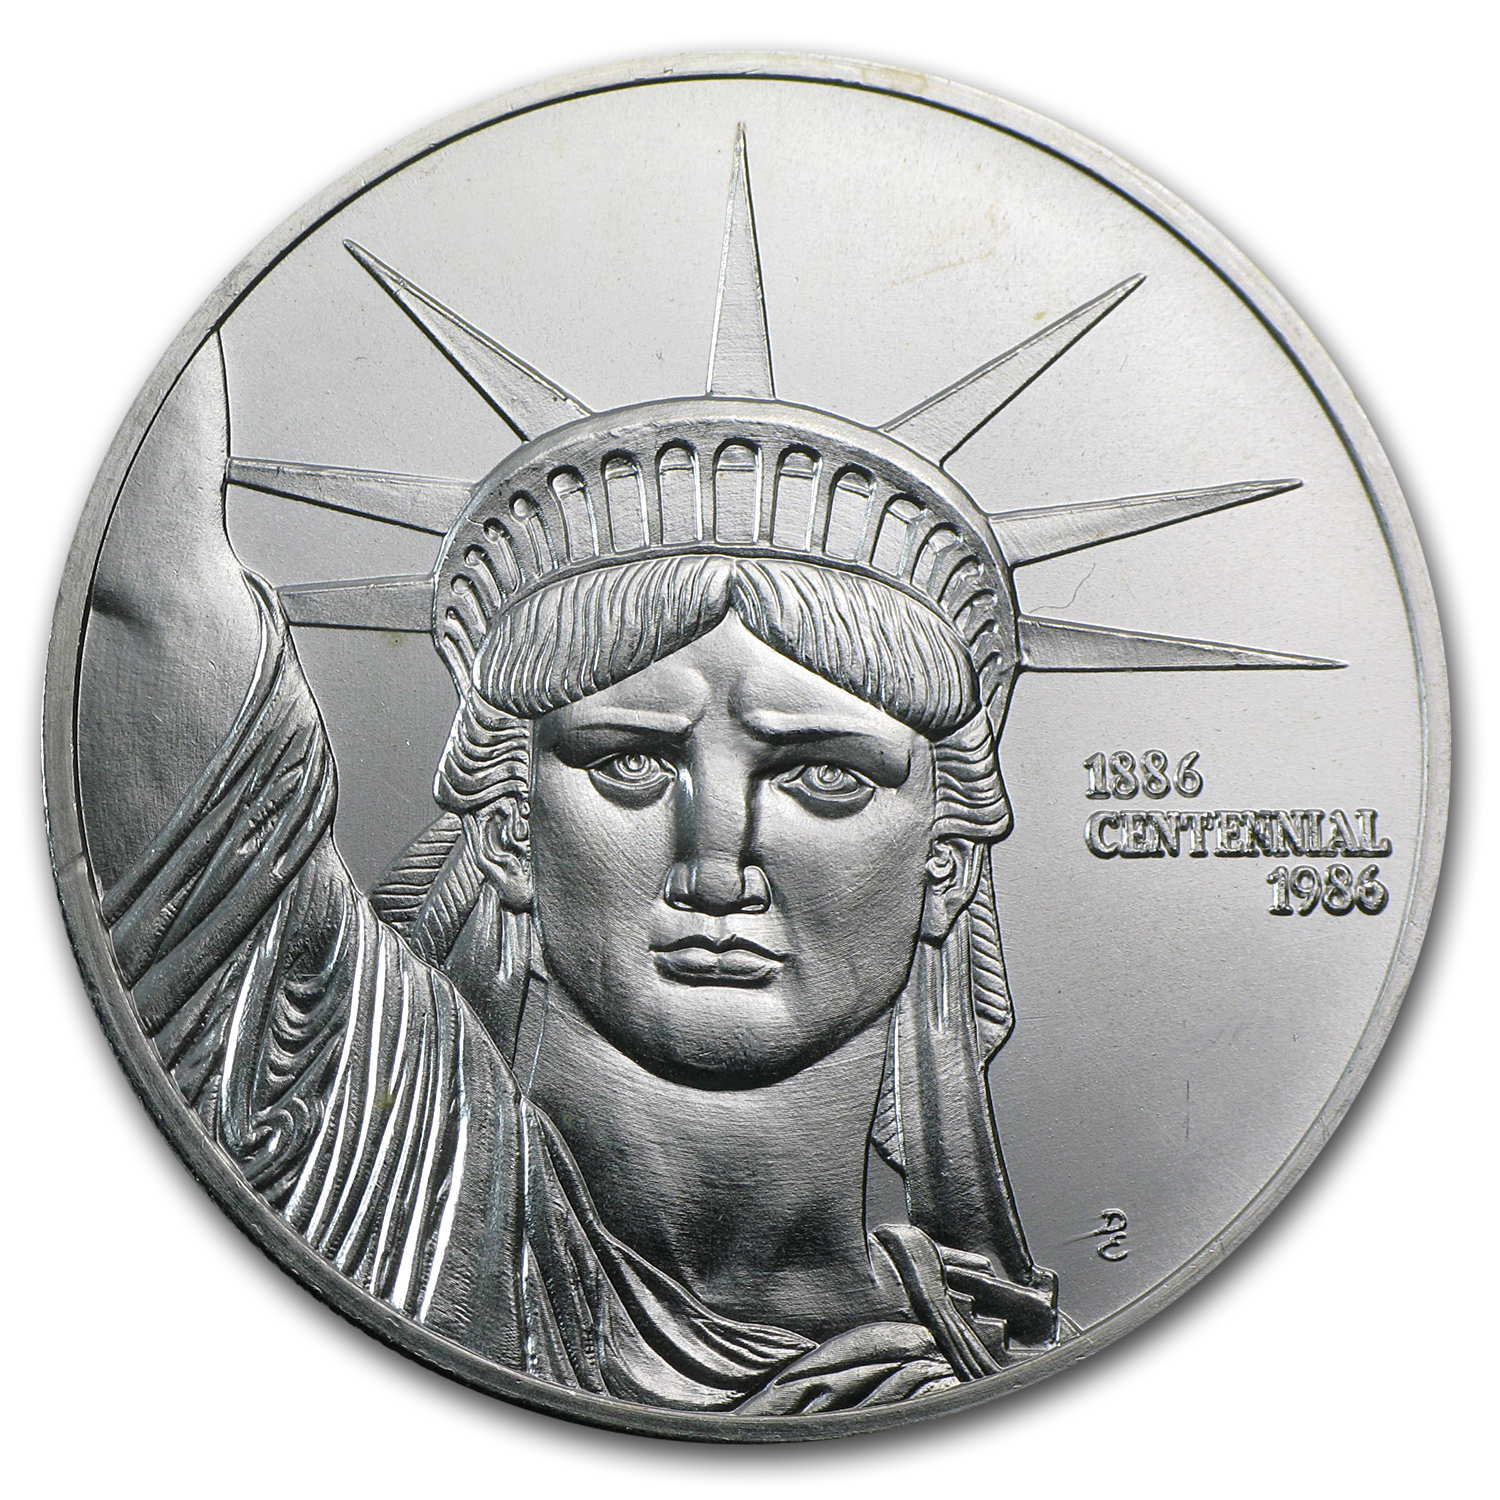 1 oz Silver Rounds - Engelhard (Statue of Liberty/MTB)